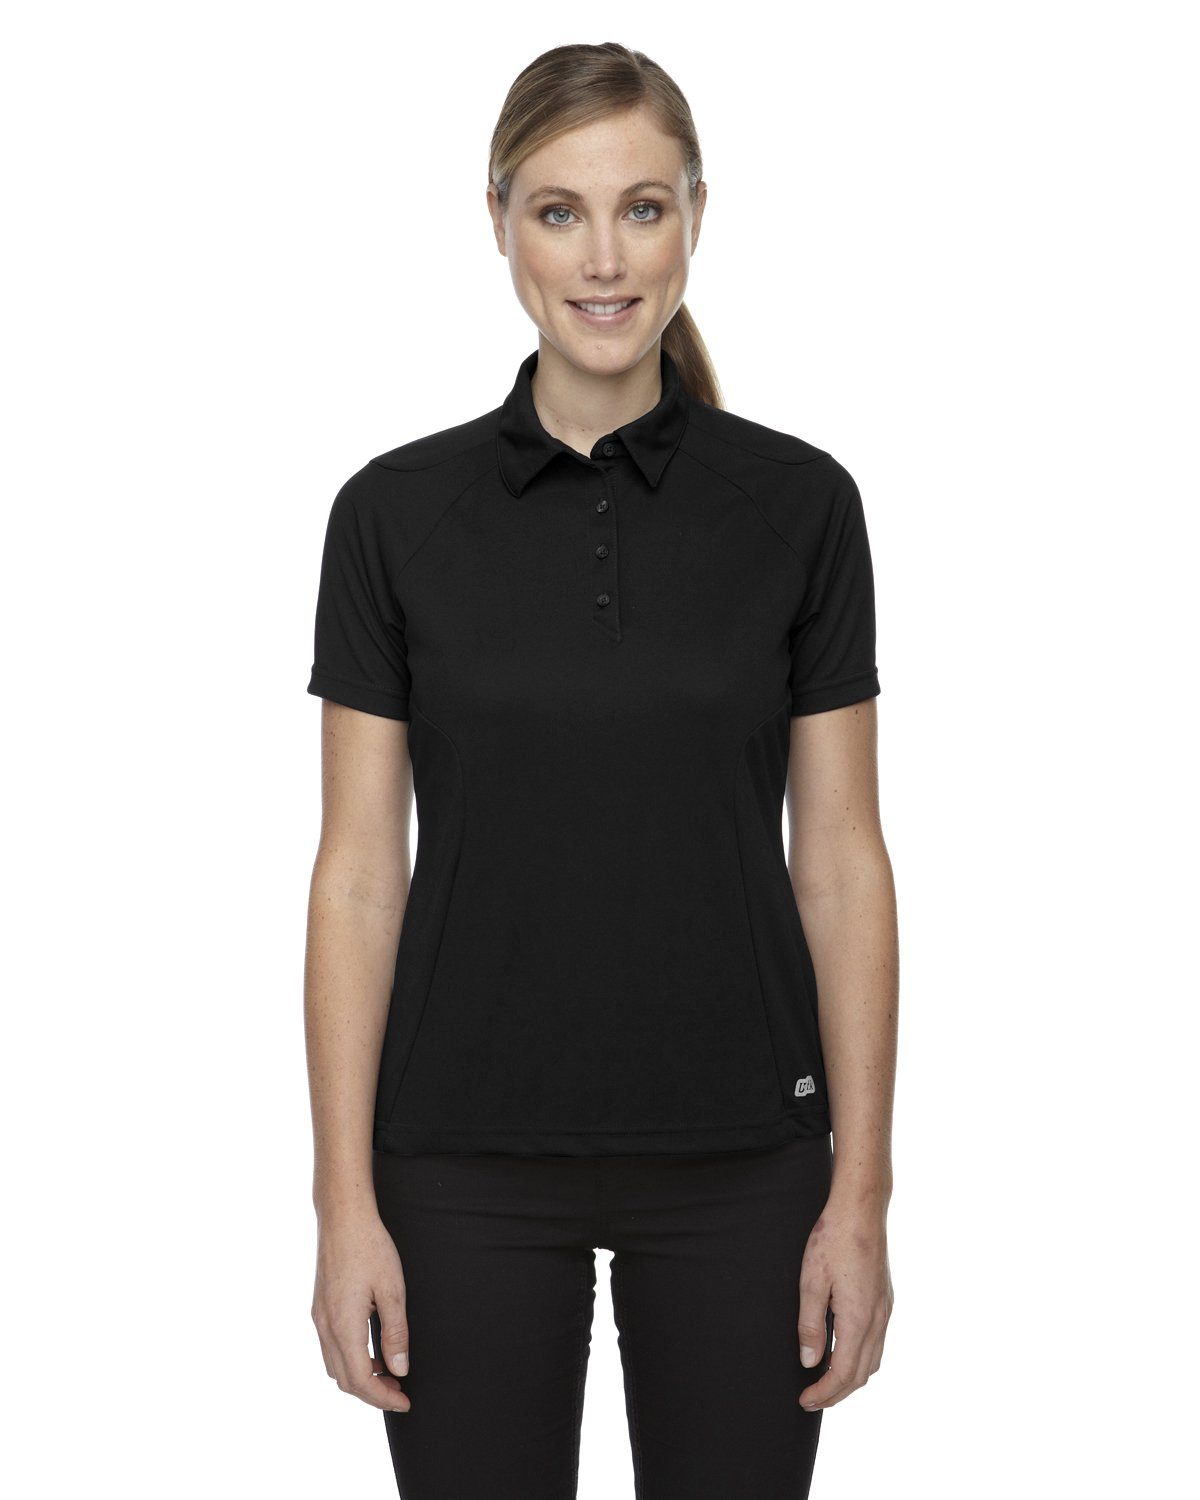 Ash City Womens Dolomite Performance Polo (X-Large, Black) by Ash City Apparel